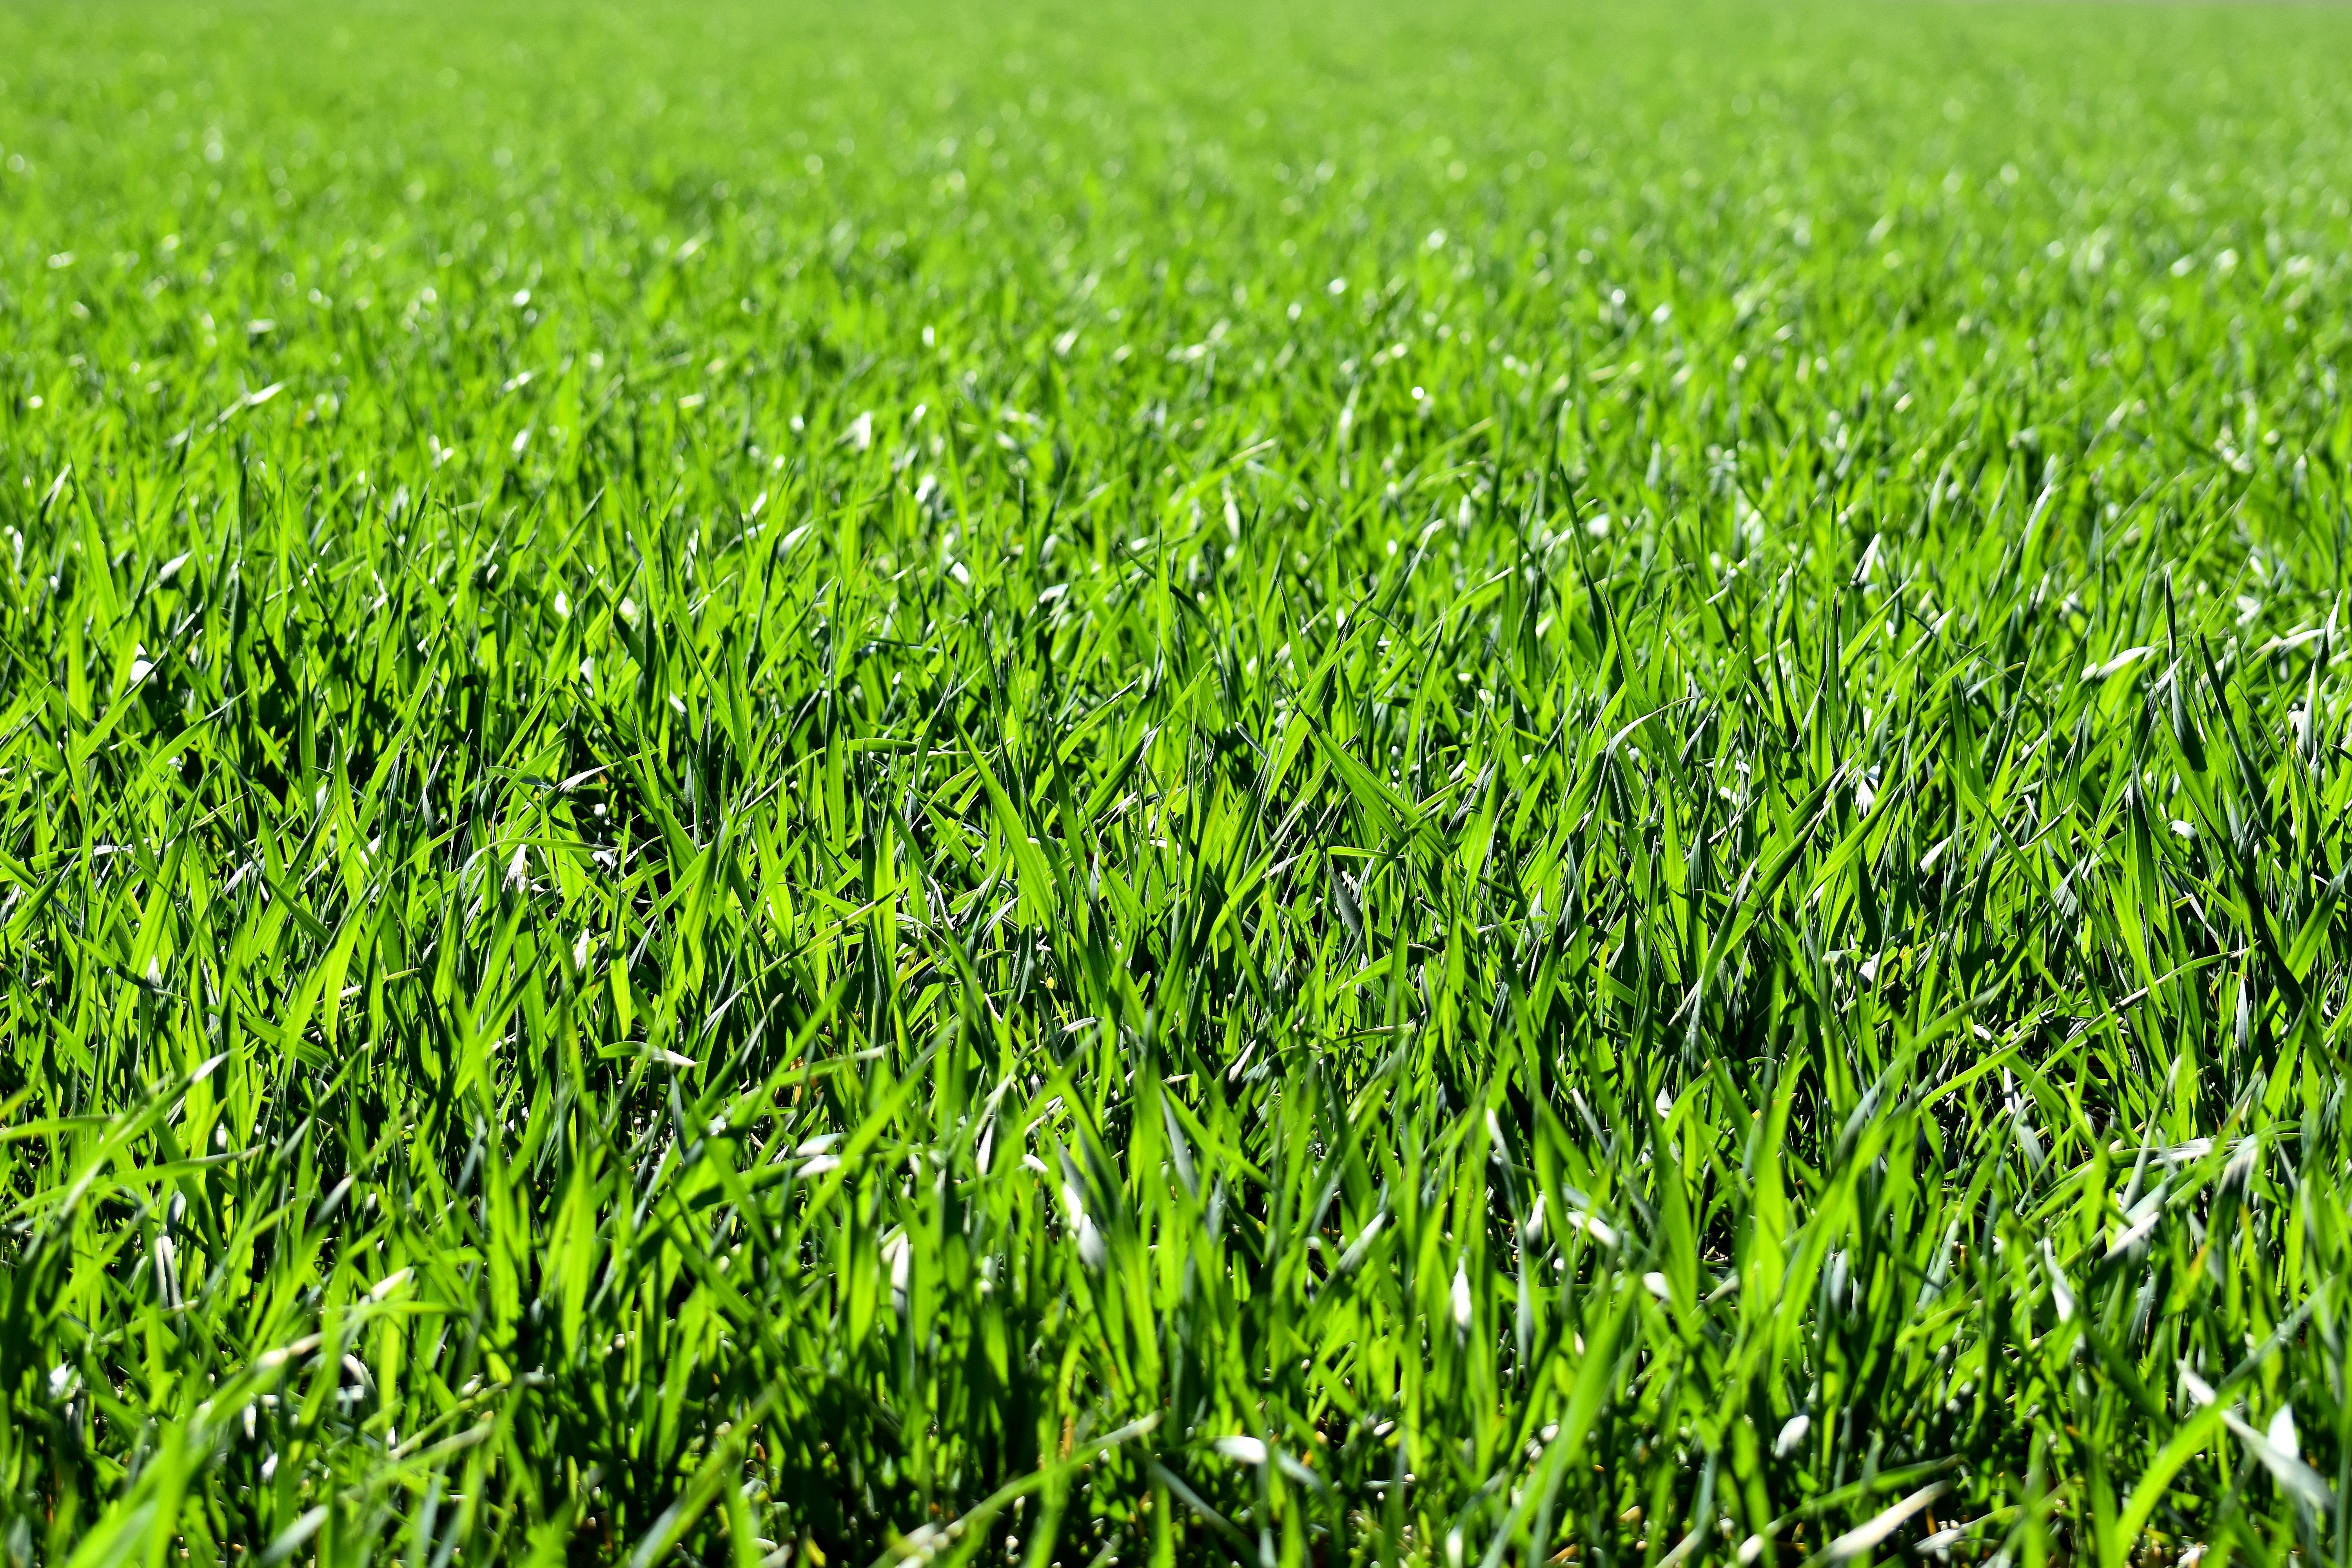 Coastal greens lawn care does maintenance on various